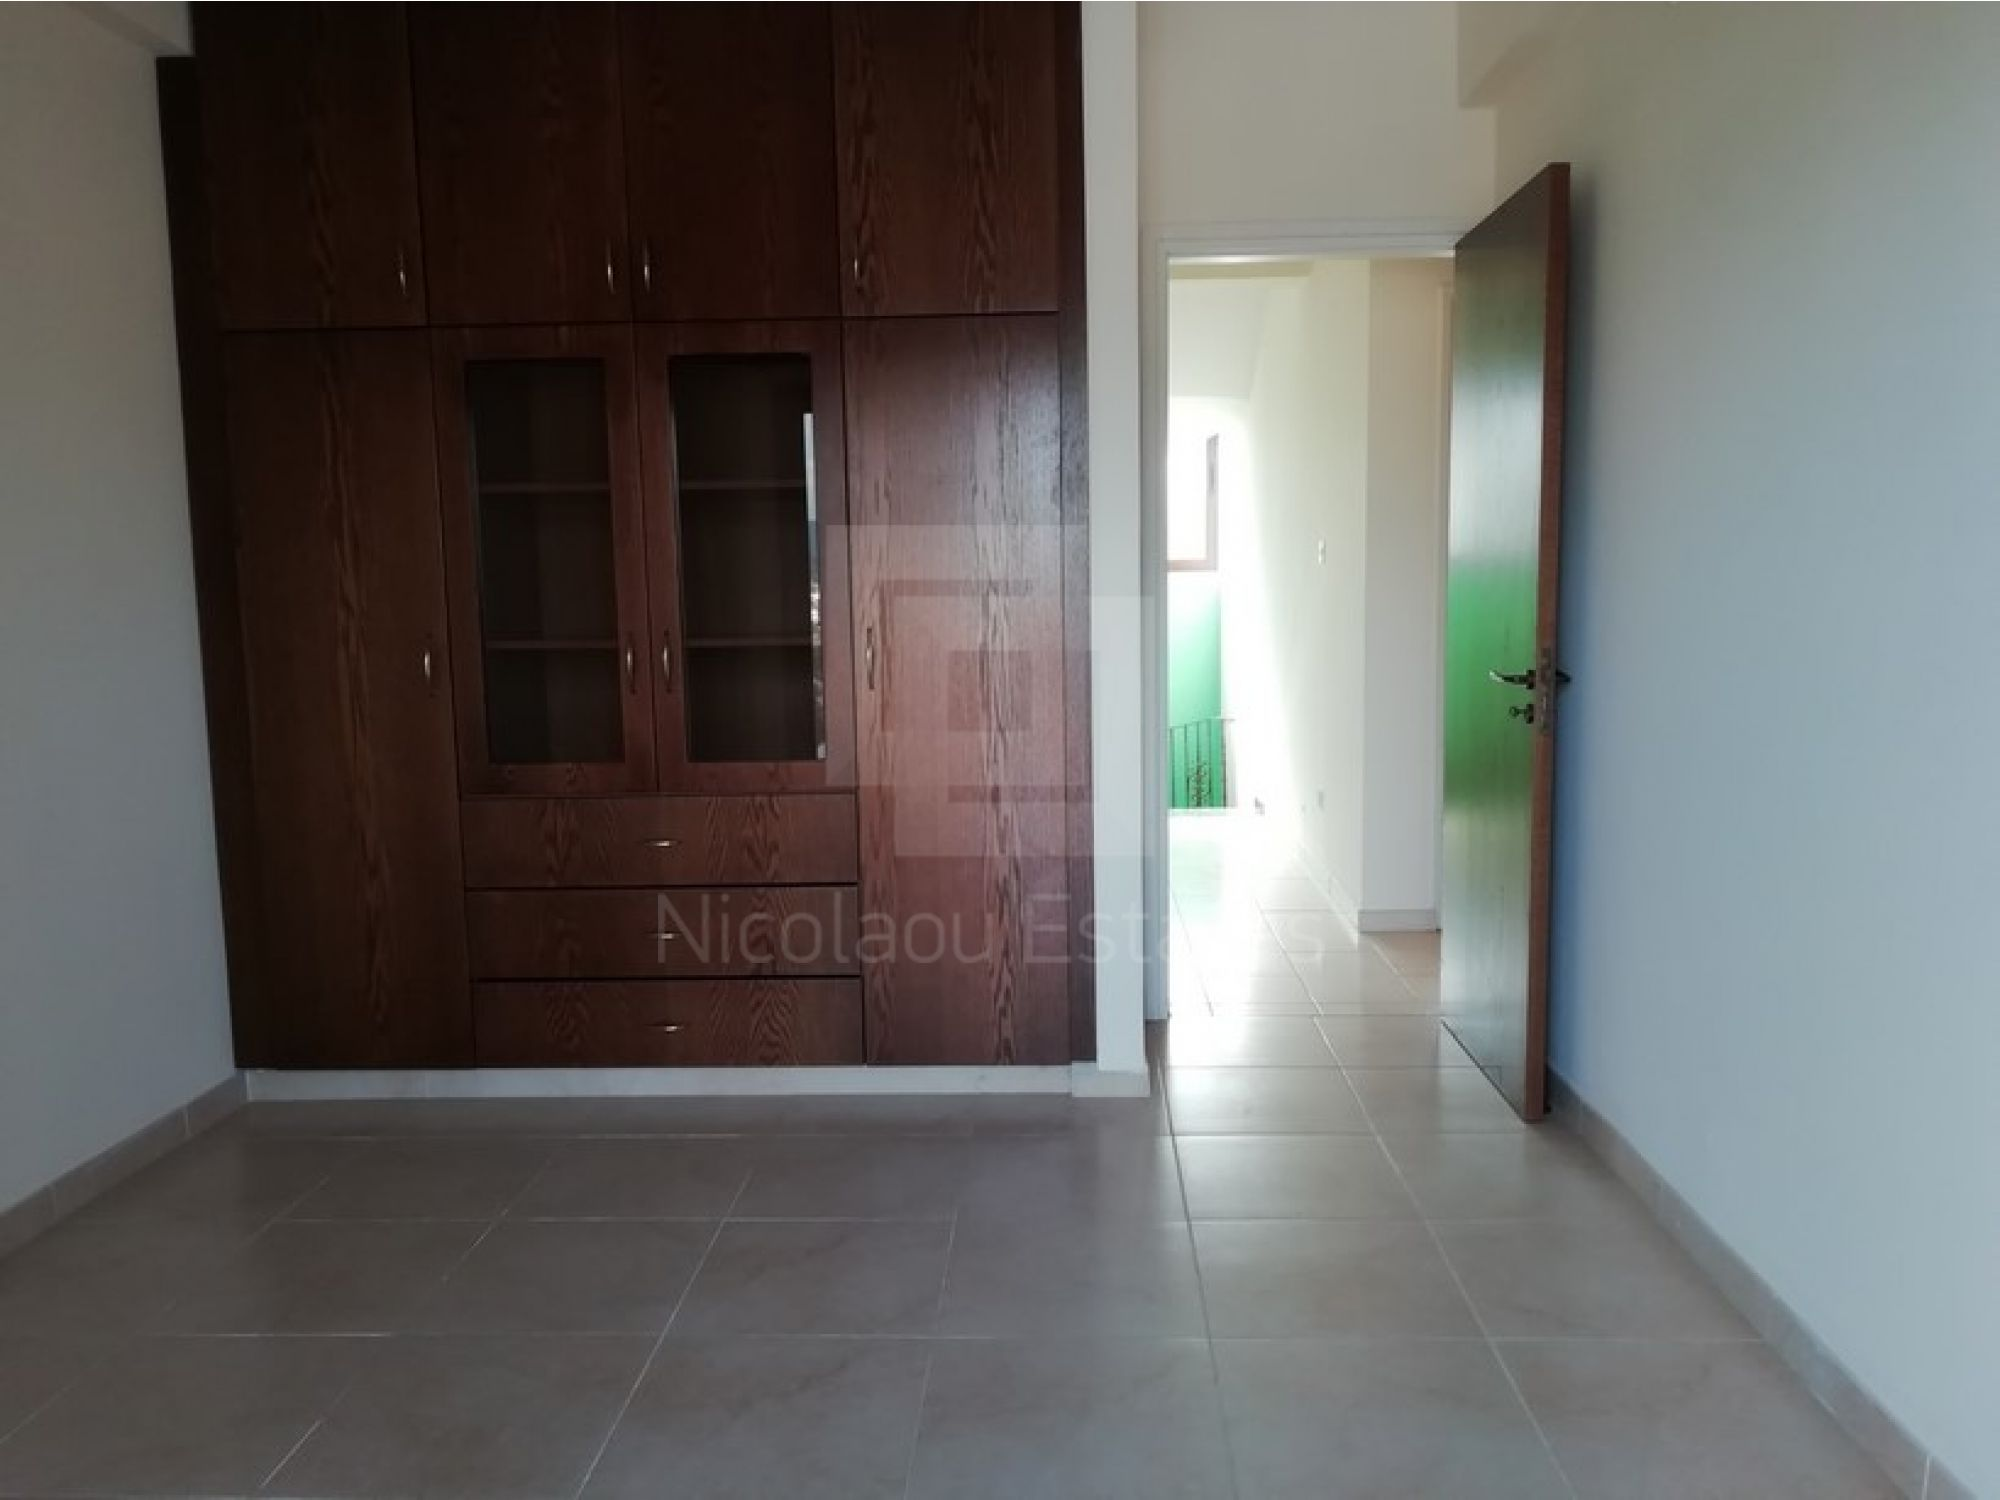 For Rent Long Term Detached House With Lot Of Privacy